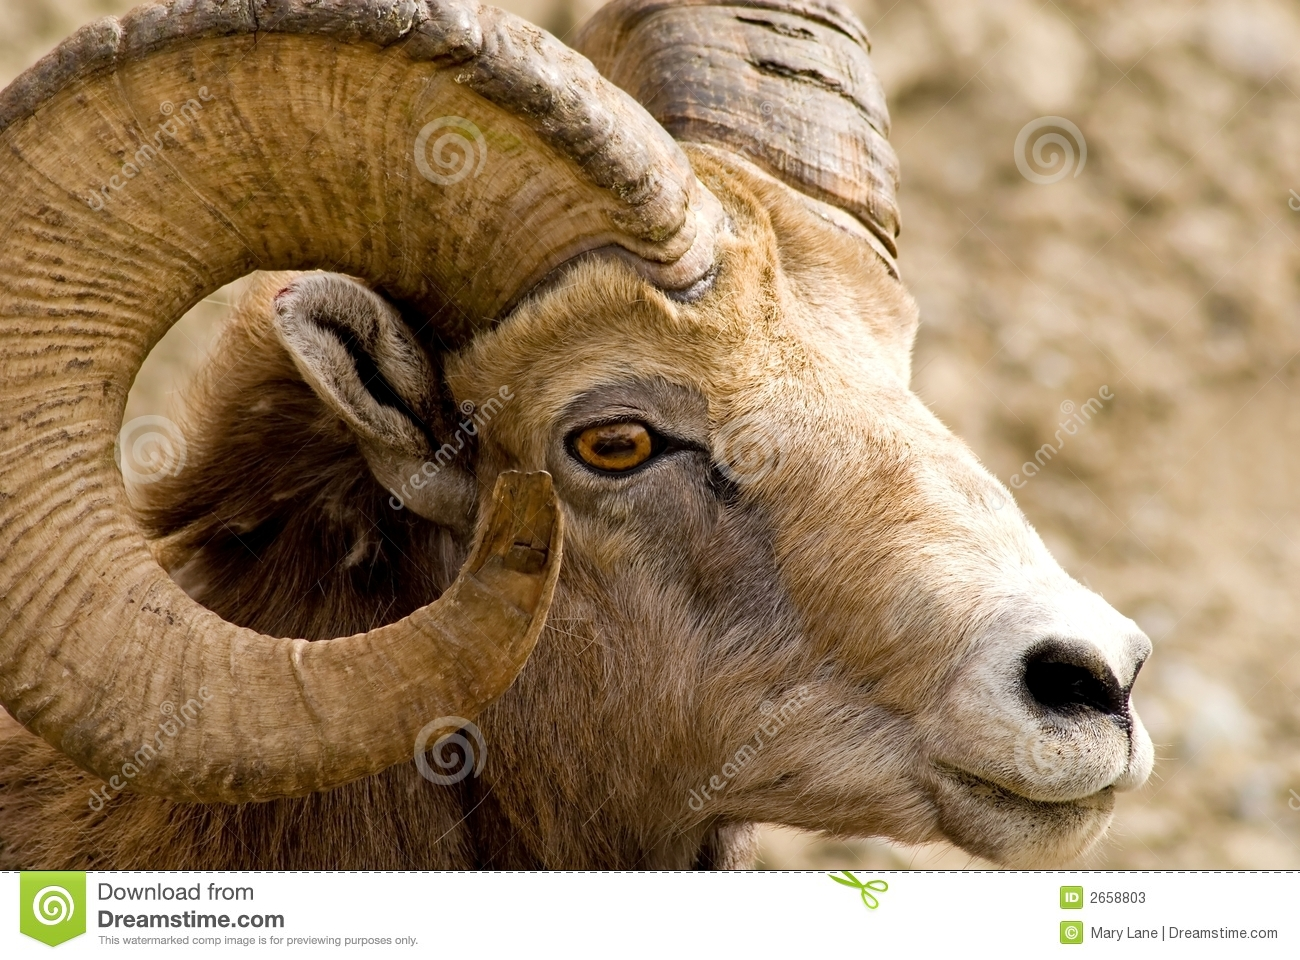 Complete Black Wallpaper Big Horned Mountain Sheep Stock Photos Image 2658803